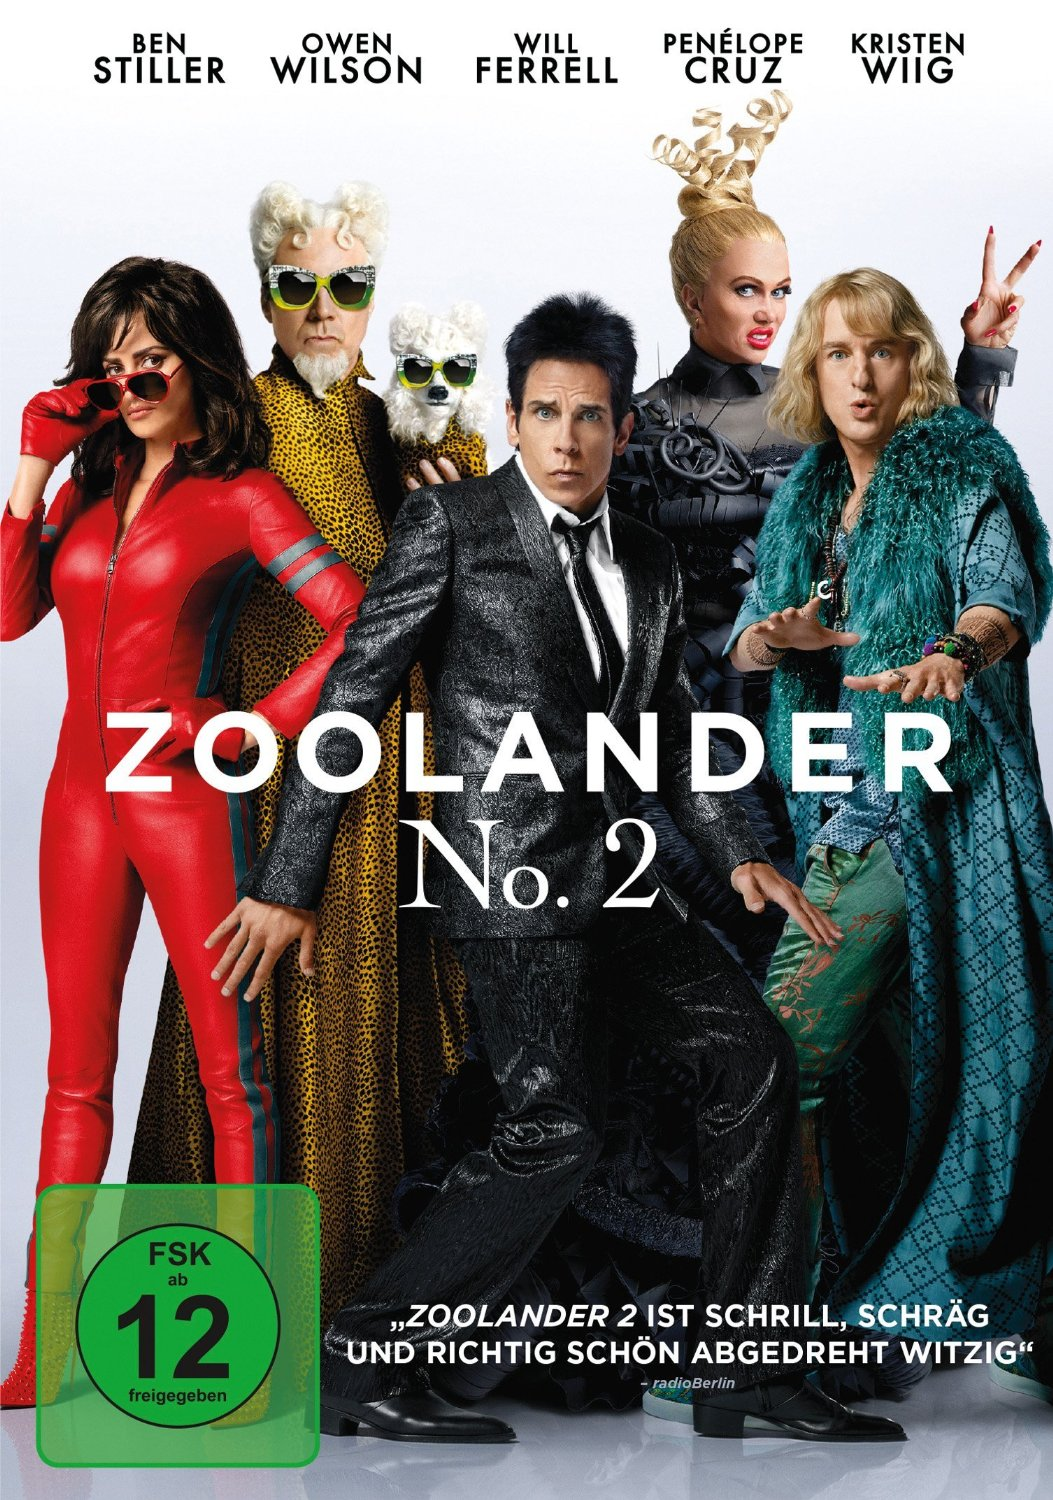 DVD-Cover von Zoolander No. 2